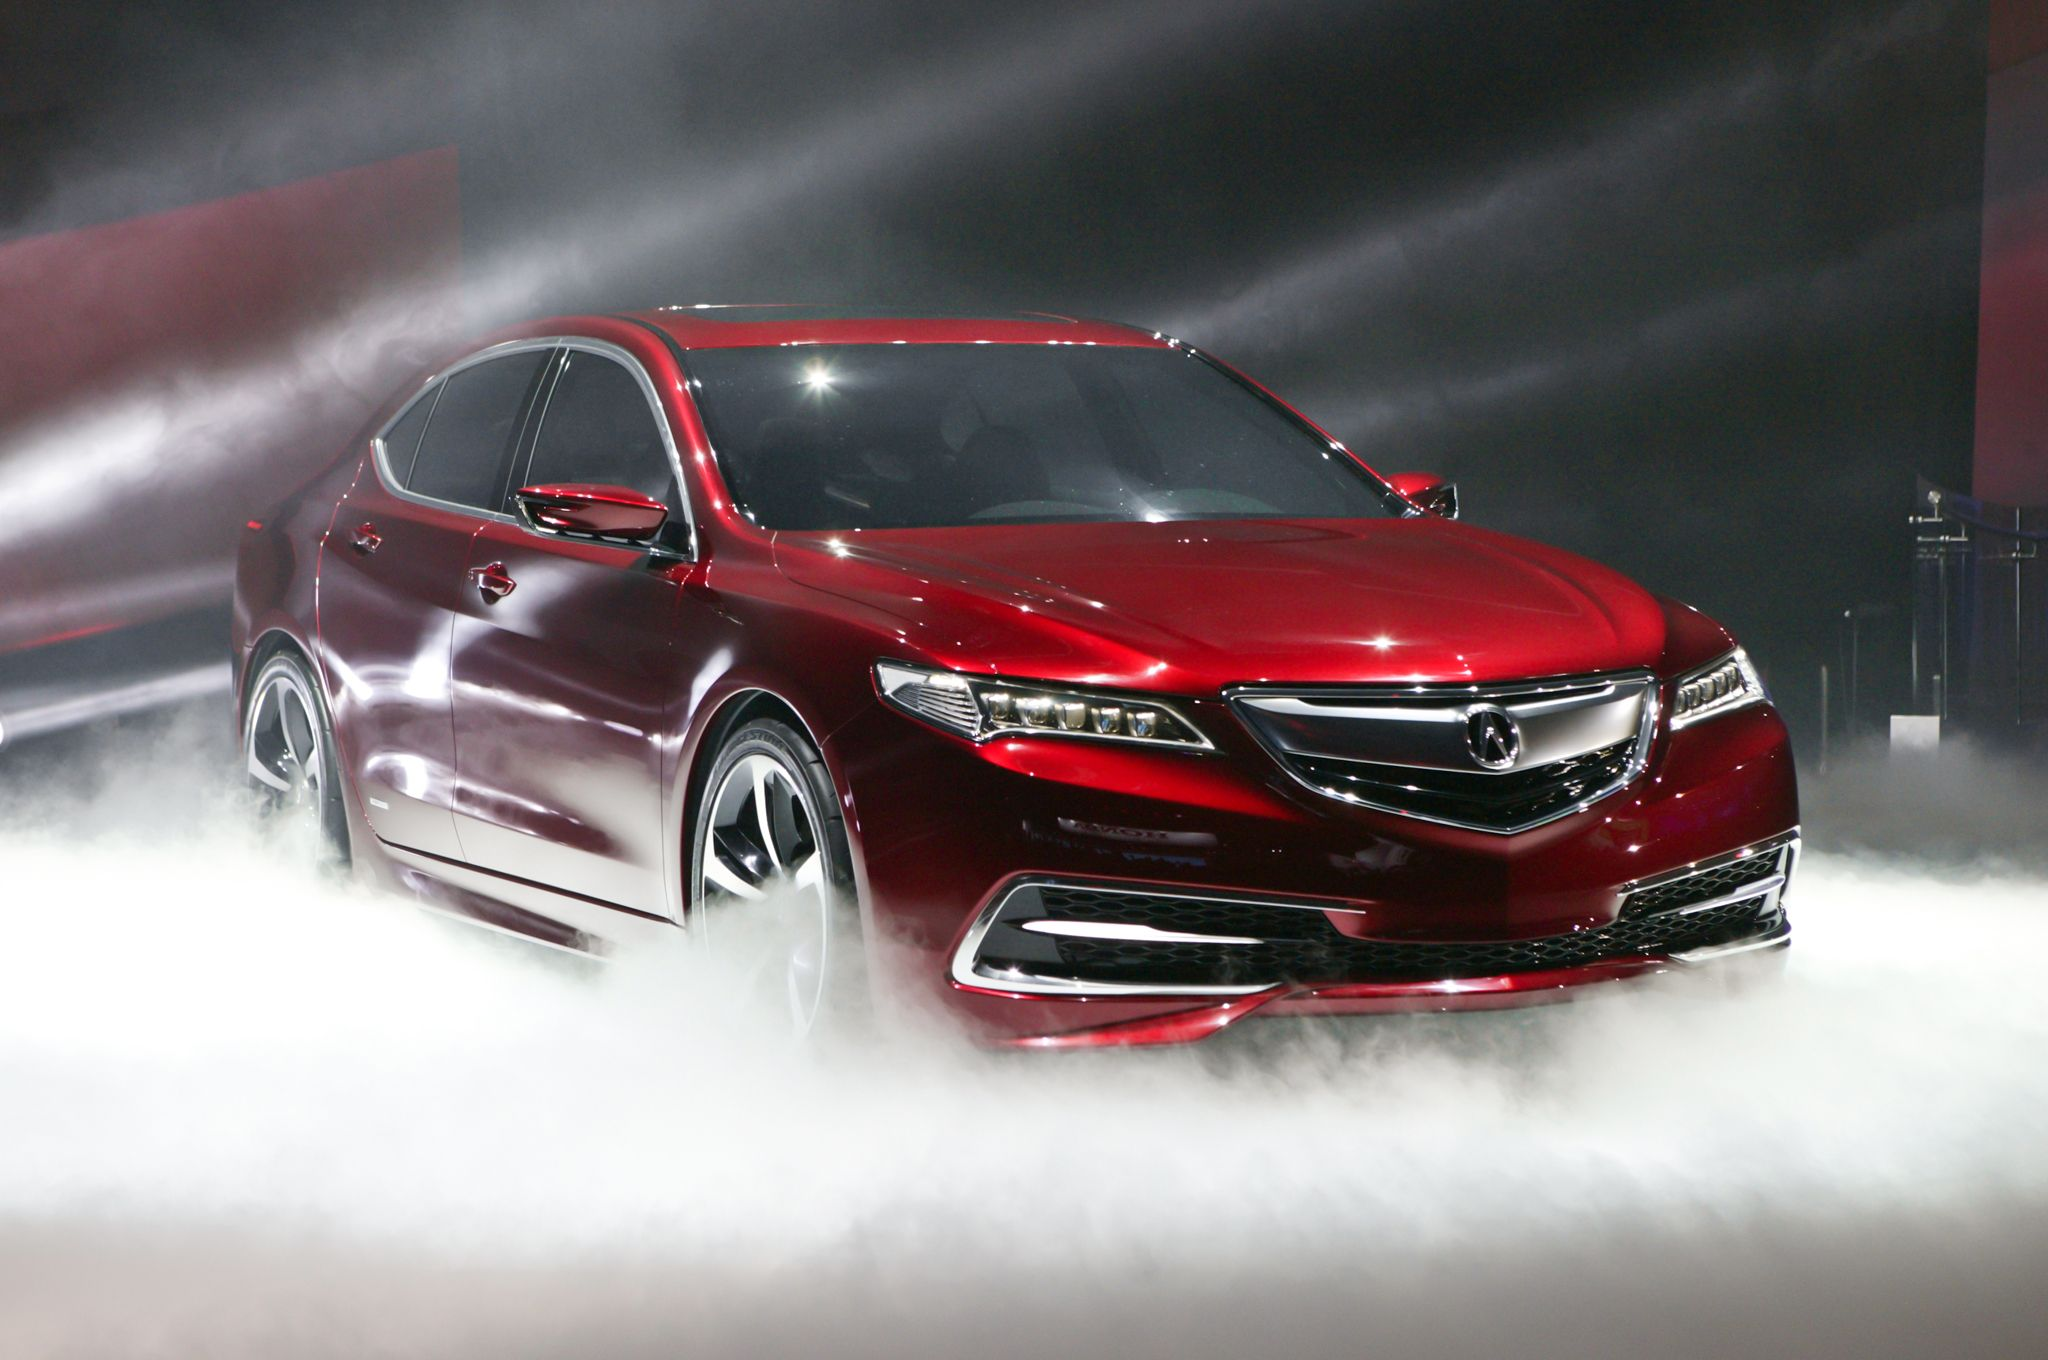 2015 acura tlx prototype revealed at the 2014 north american international auto show